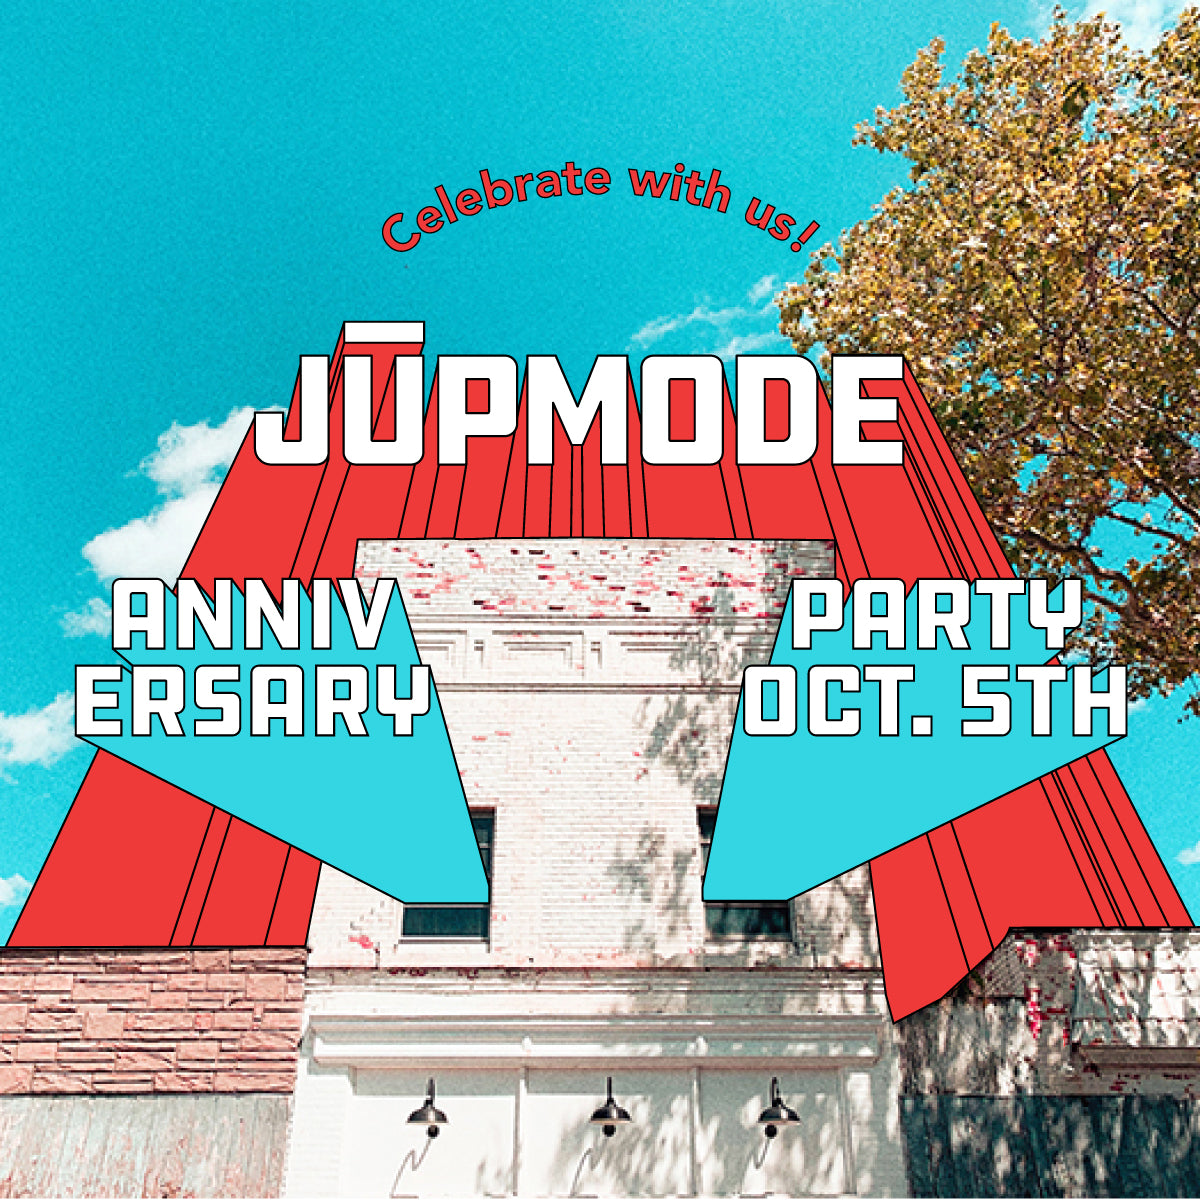 Jupmode's 3rd Year on Adams Street!